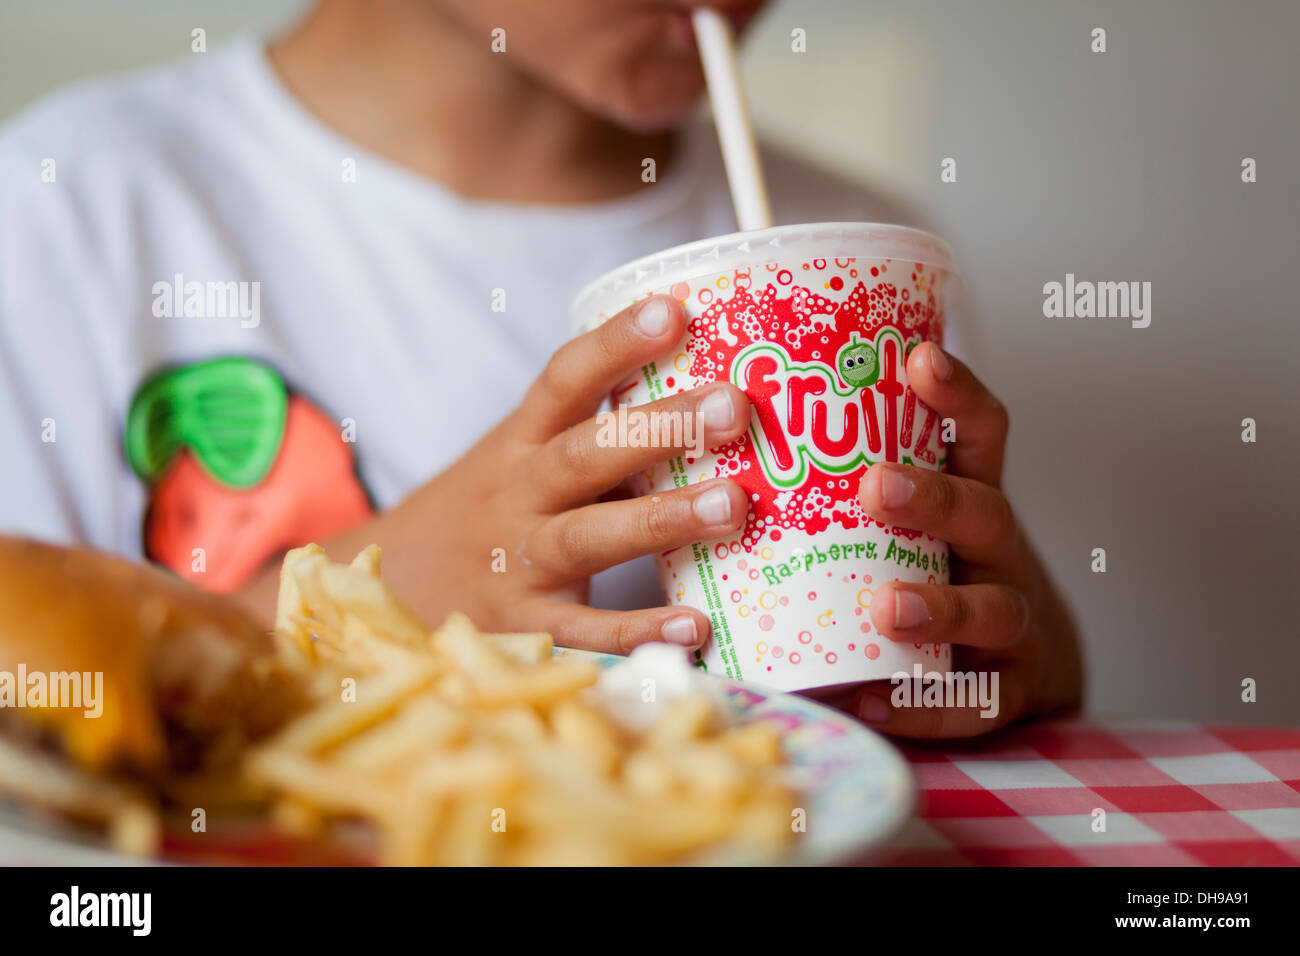 Child drinking milkshake with a straw - Stock Image